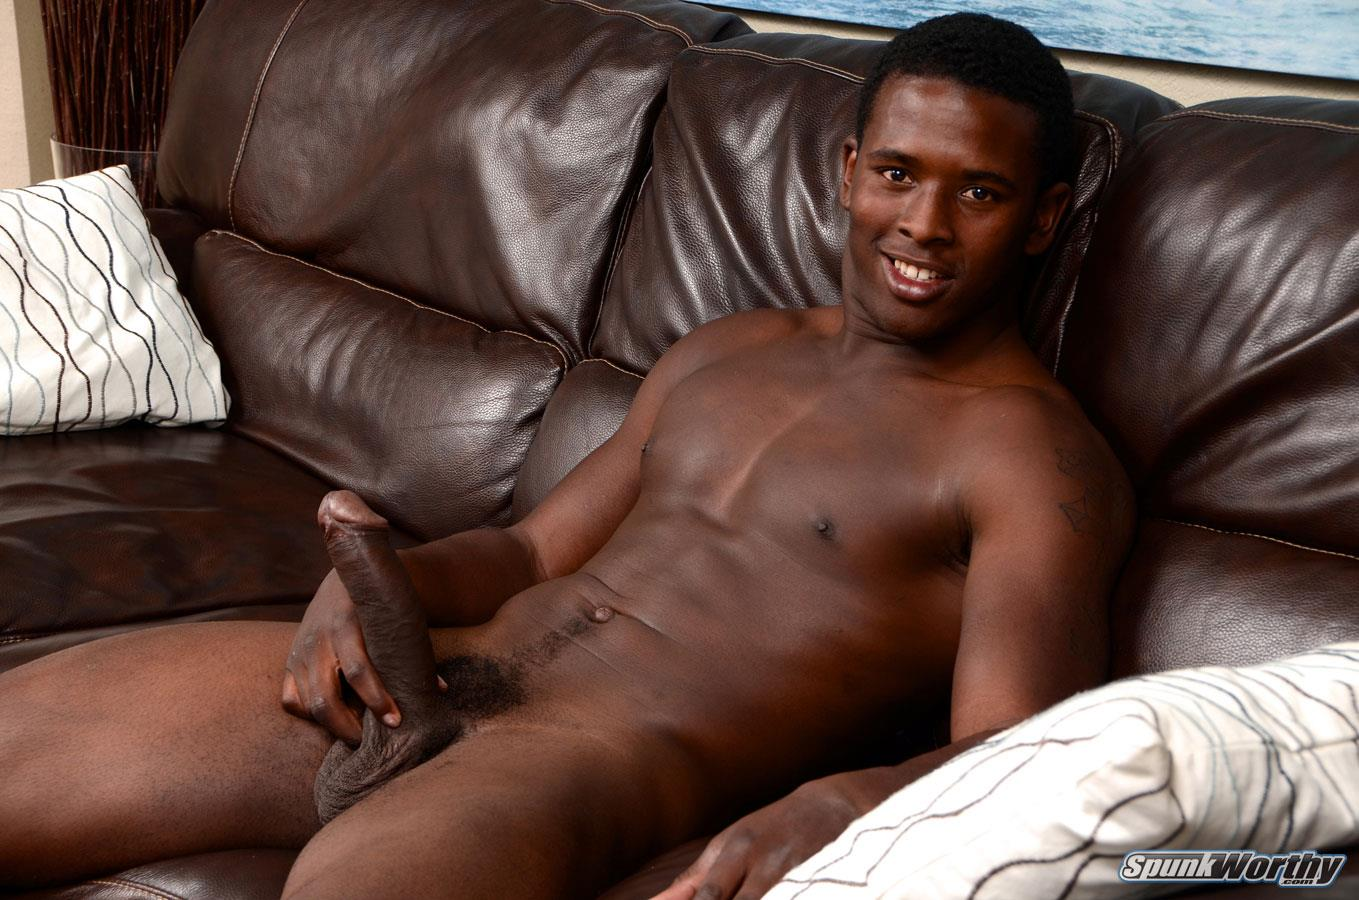 African boy with big black penis